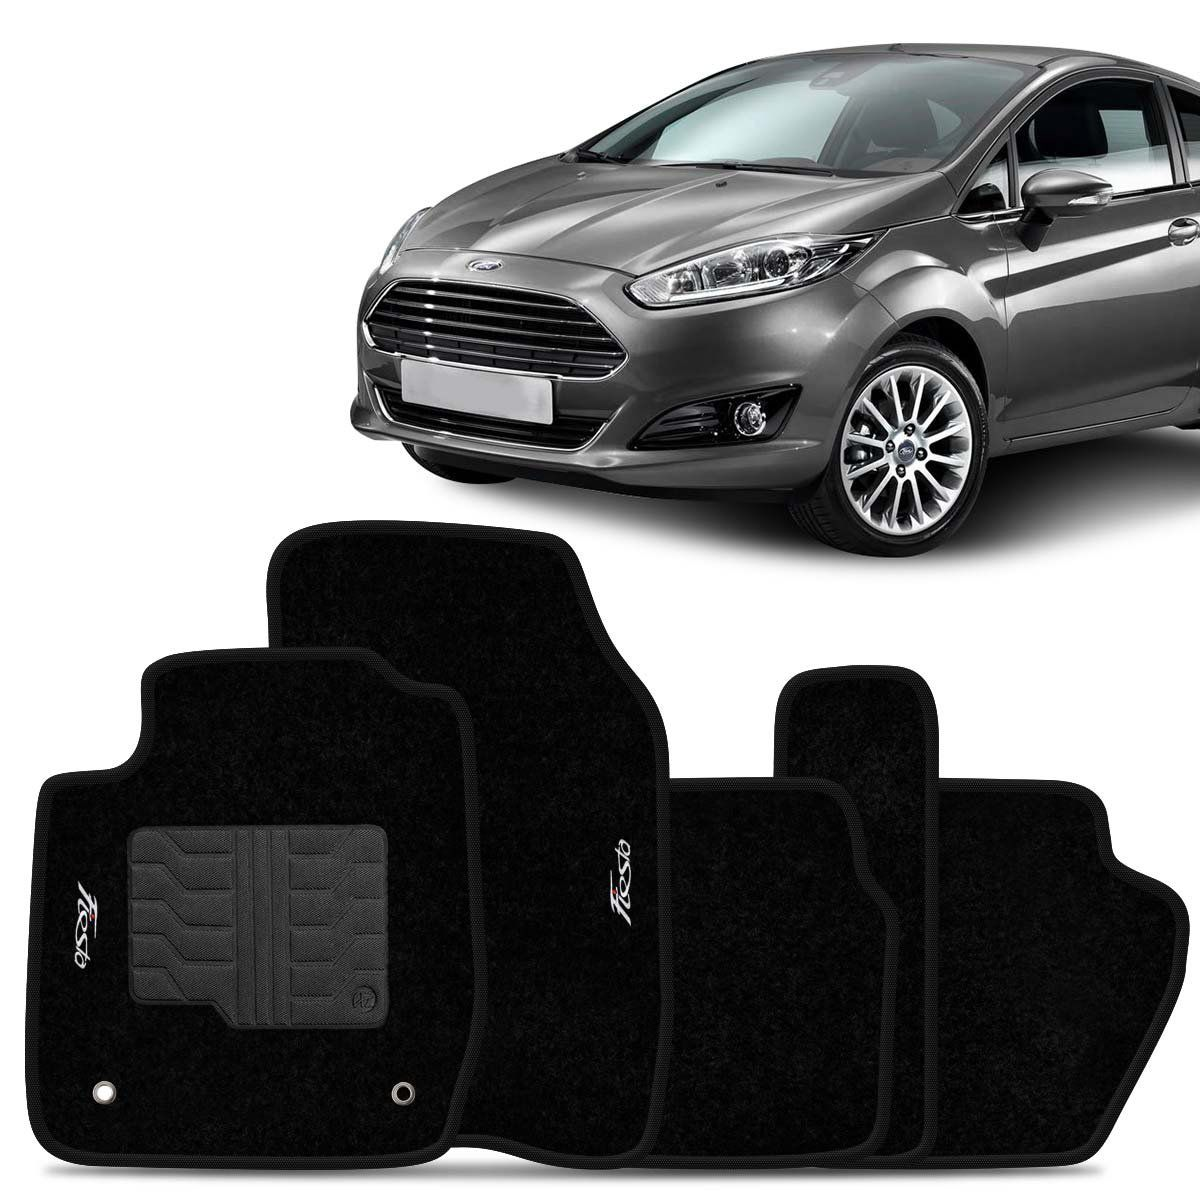 Tapete Carpete New Fiesta 2014 2015 Preto